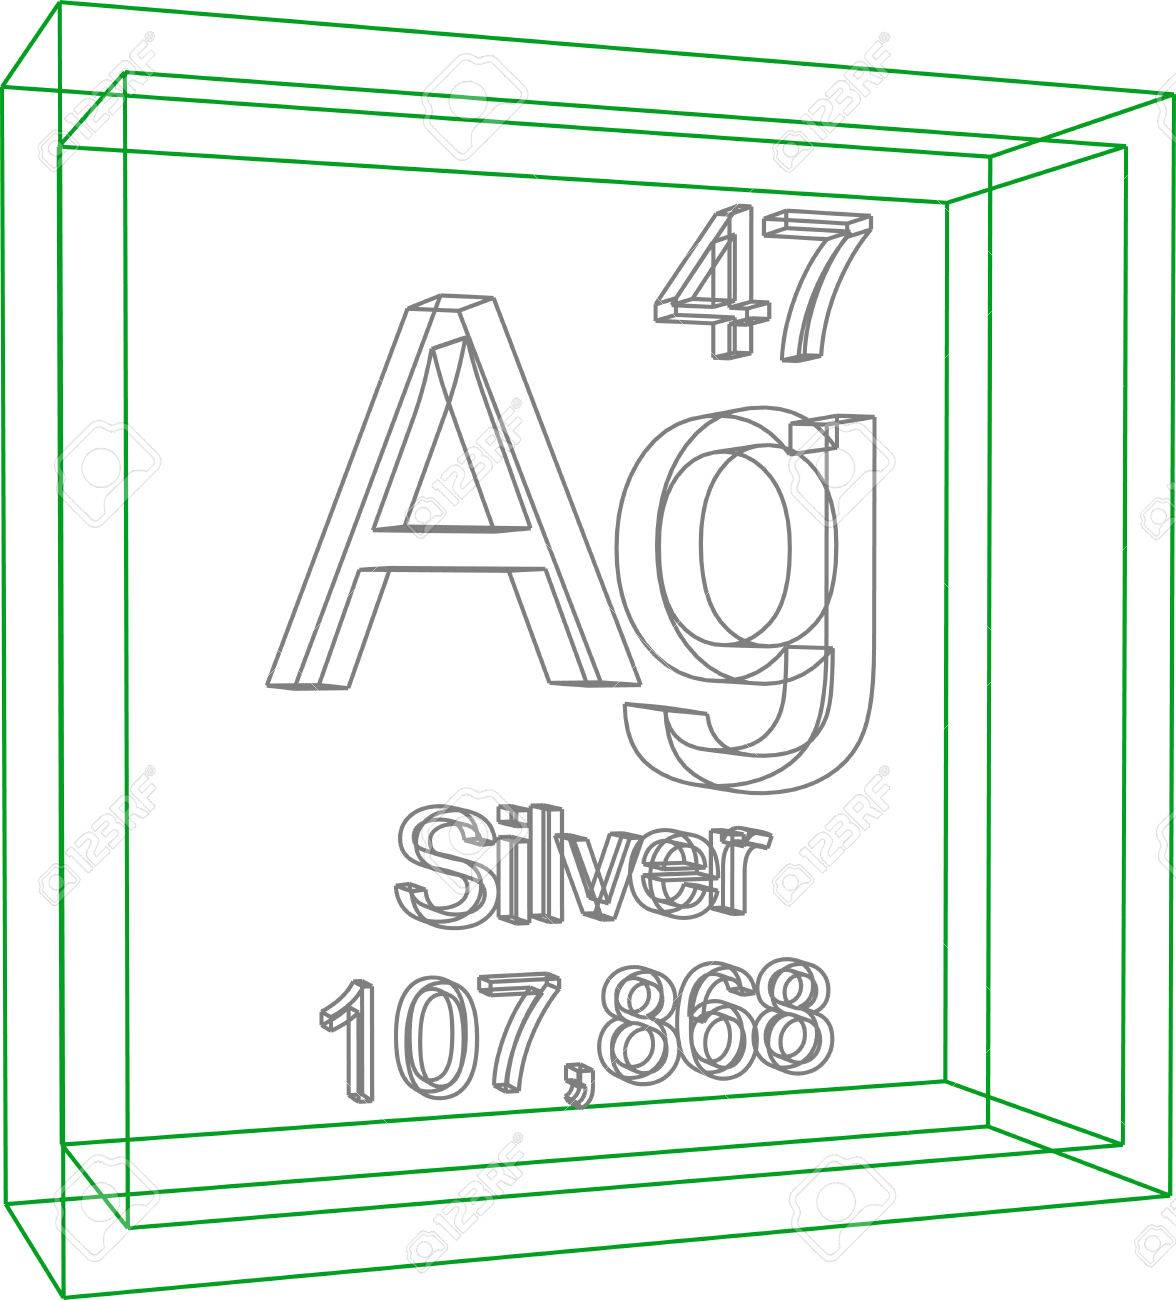 Periodic table of elements silver royalty free cliparts vectors periodic table of elements silver stock vector 57970372 urtaz Images